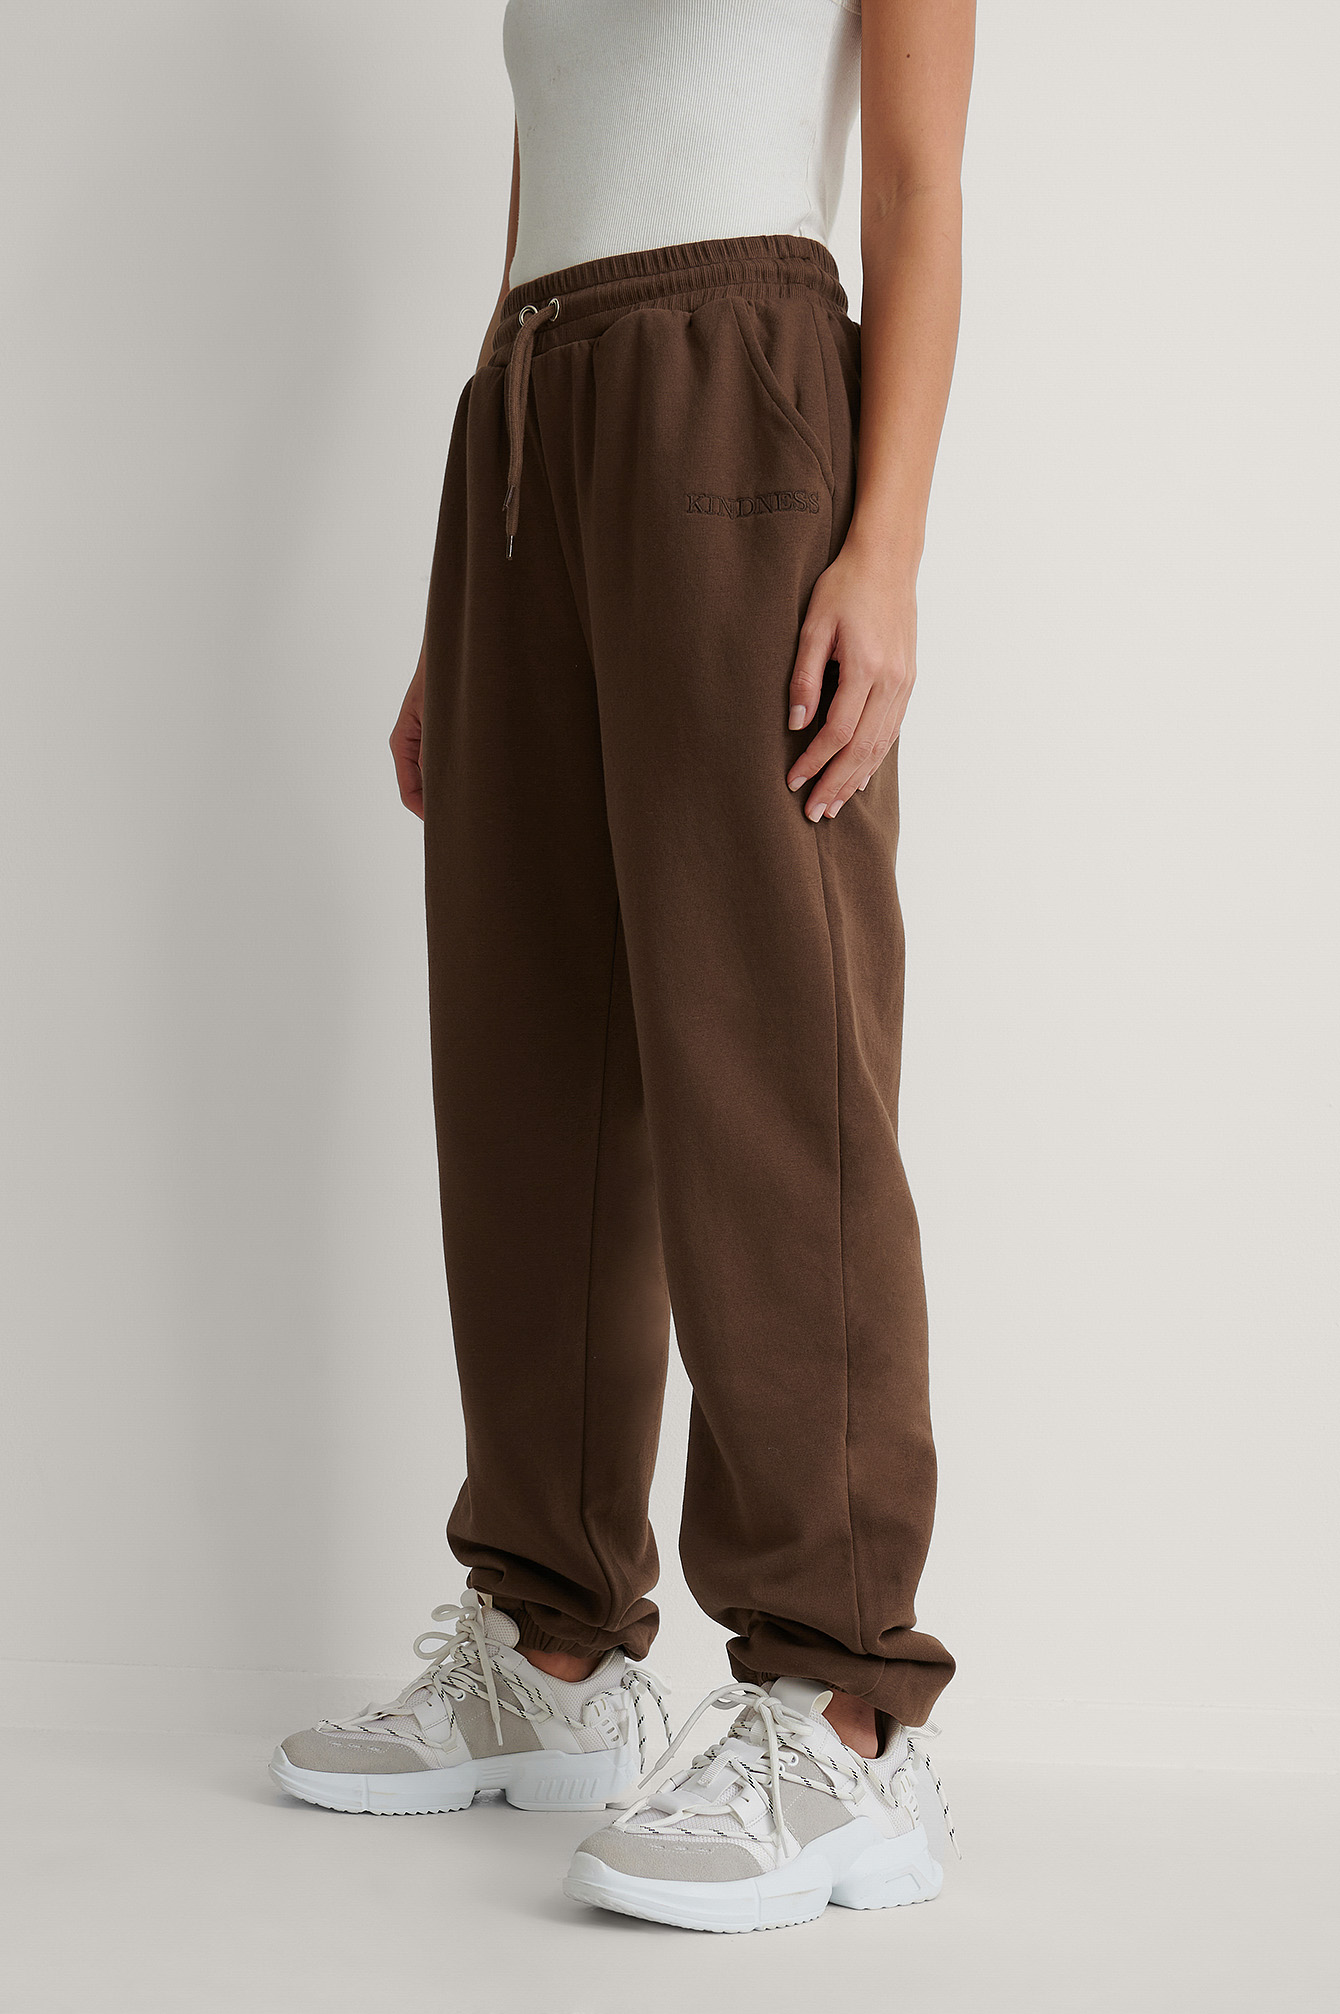 Brown Embroidery Detail Sweatpants